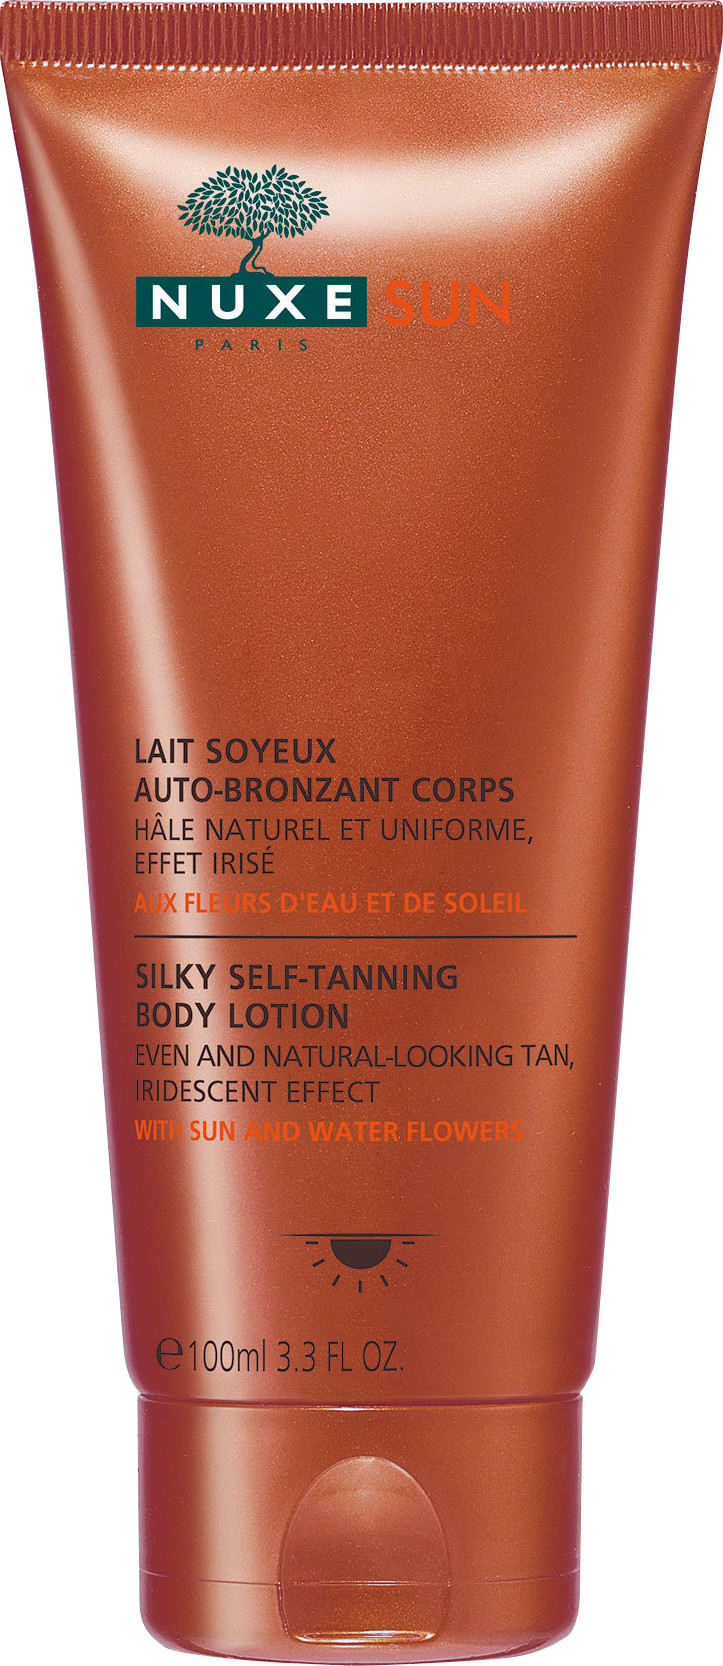 Nuxe Sun Silky Self Tanning Body Lotion